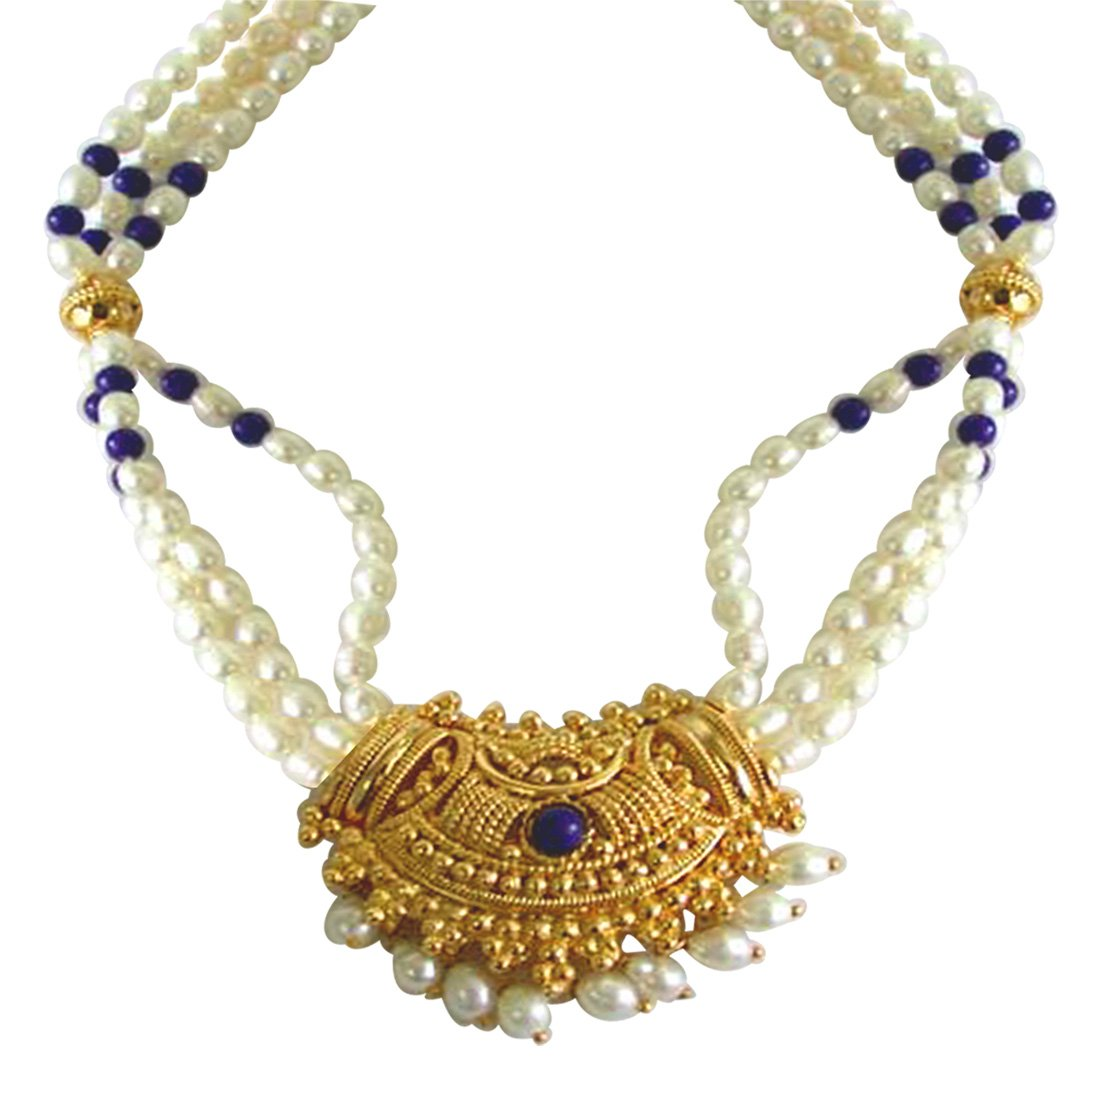 Gold Plated Temple Design Pendant, 3 Line Rice Pearl & Blue Lapiz Beads Pendant Necklace for Women (SNP4B)